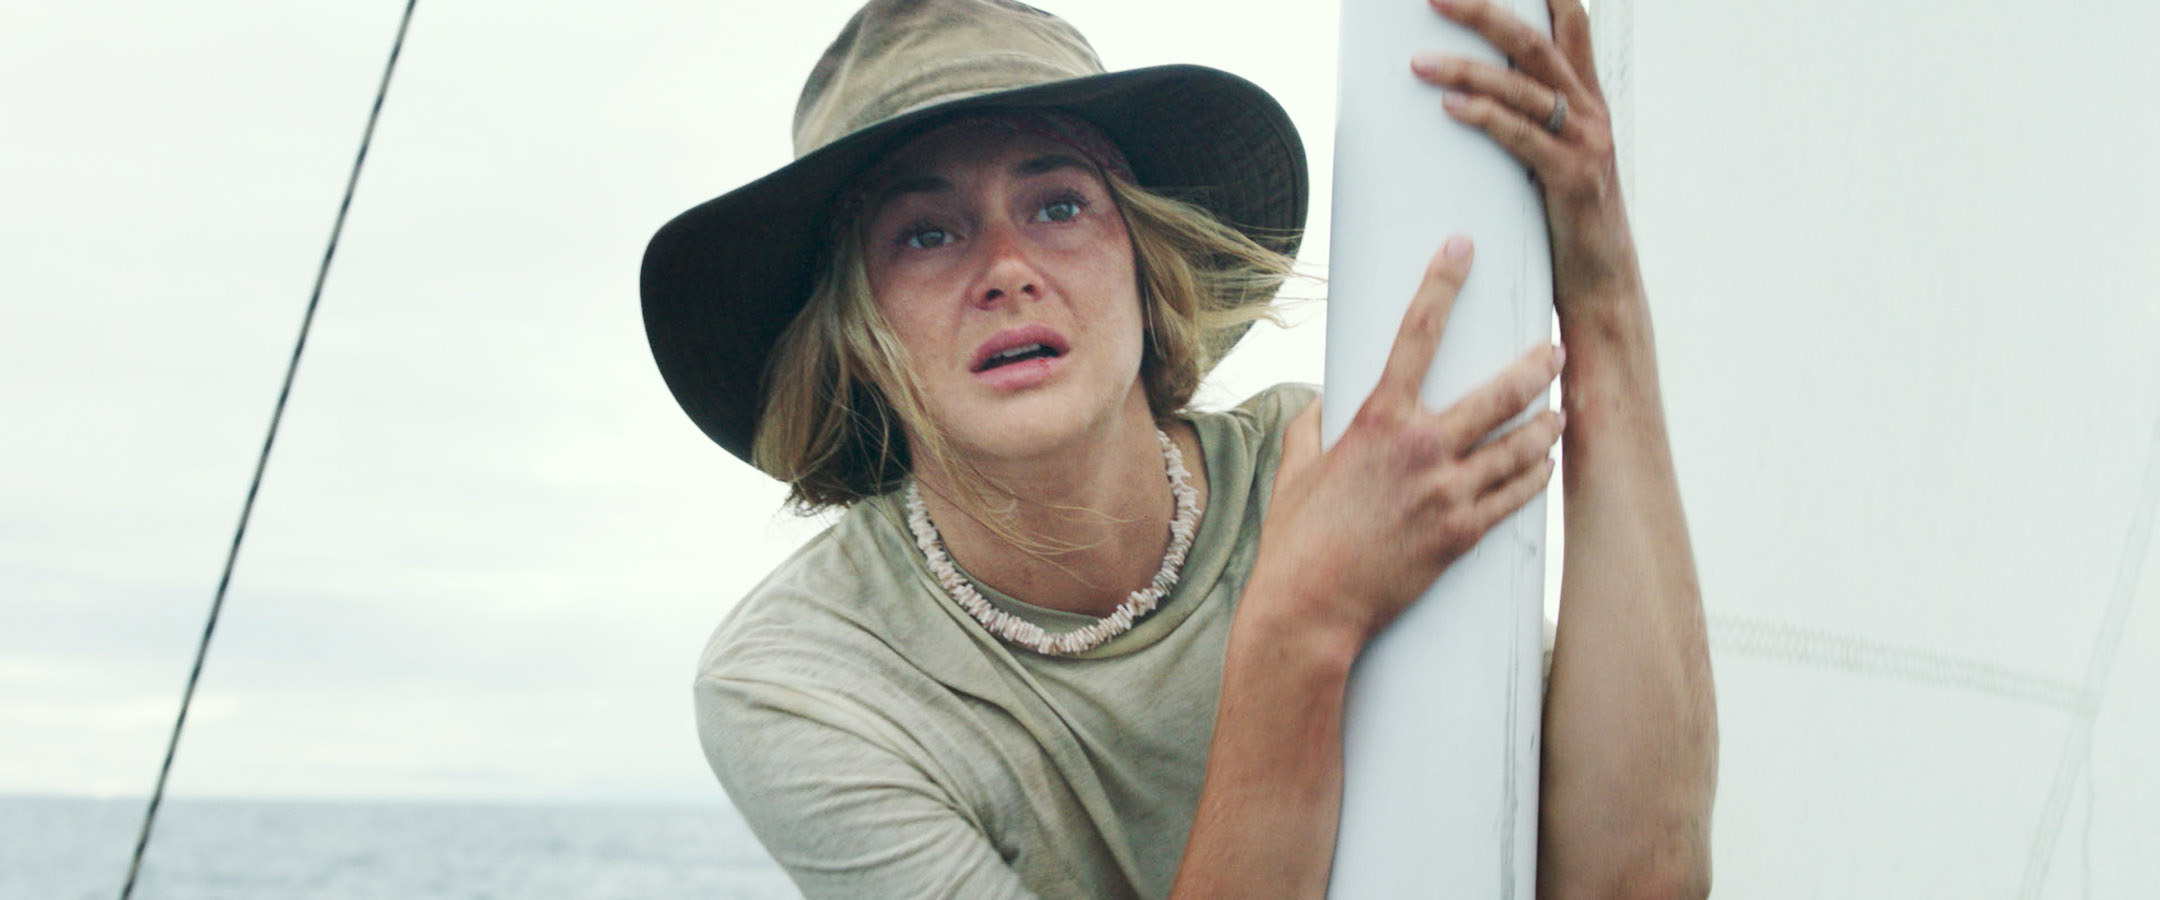 Shailene Woodley holding onto a boat while appearing to look in distress